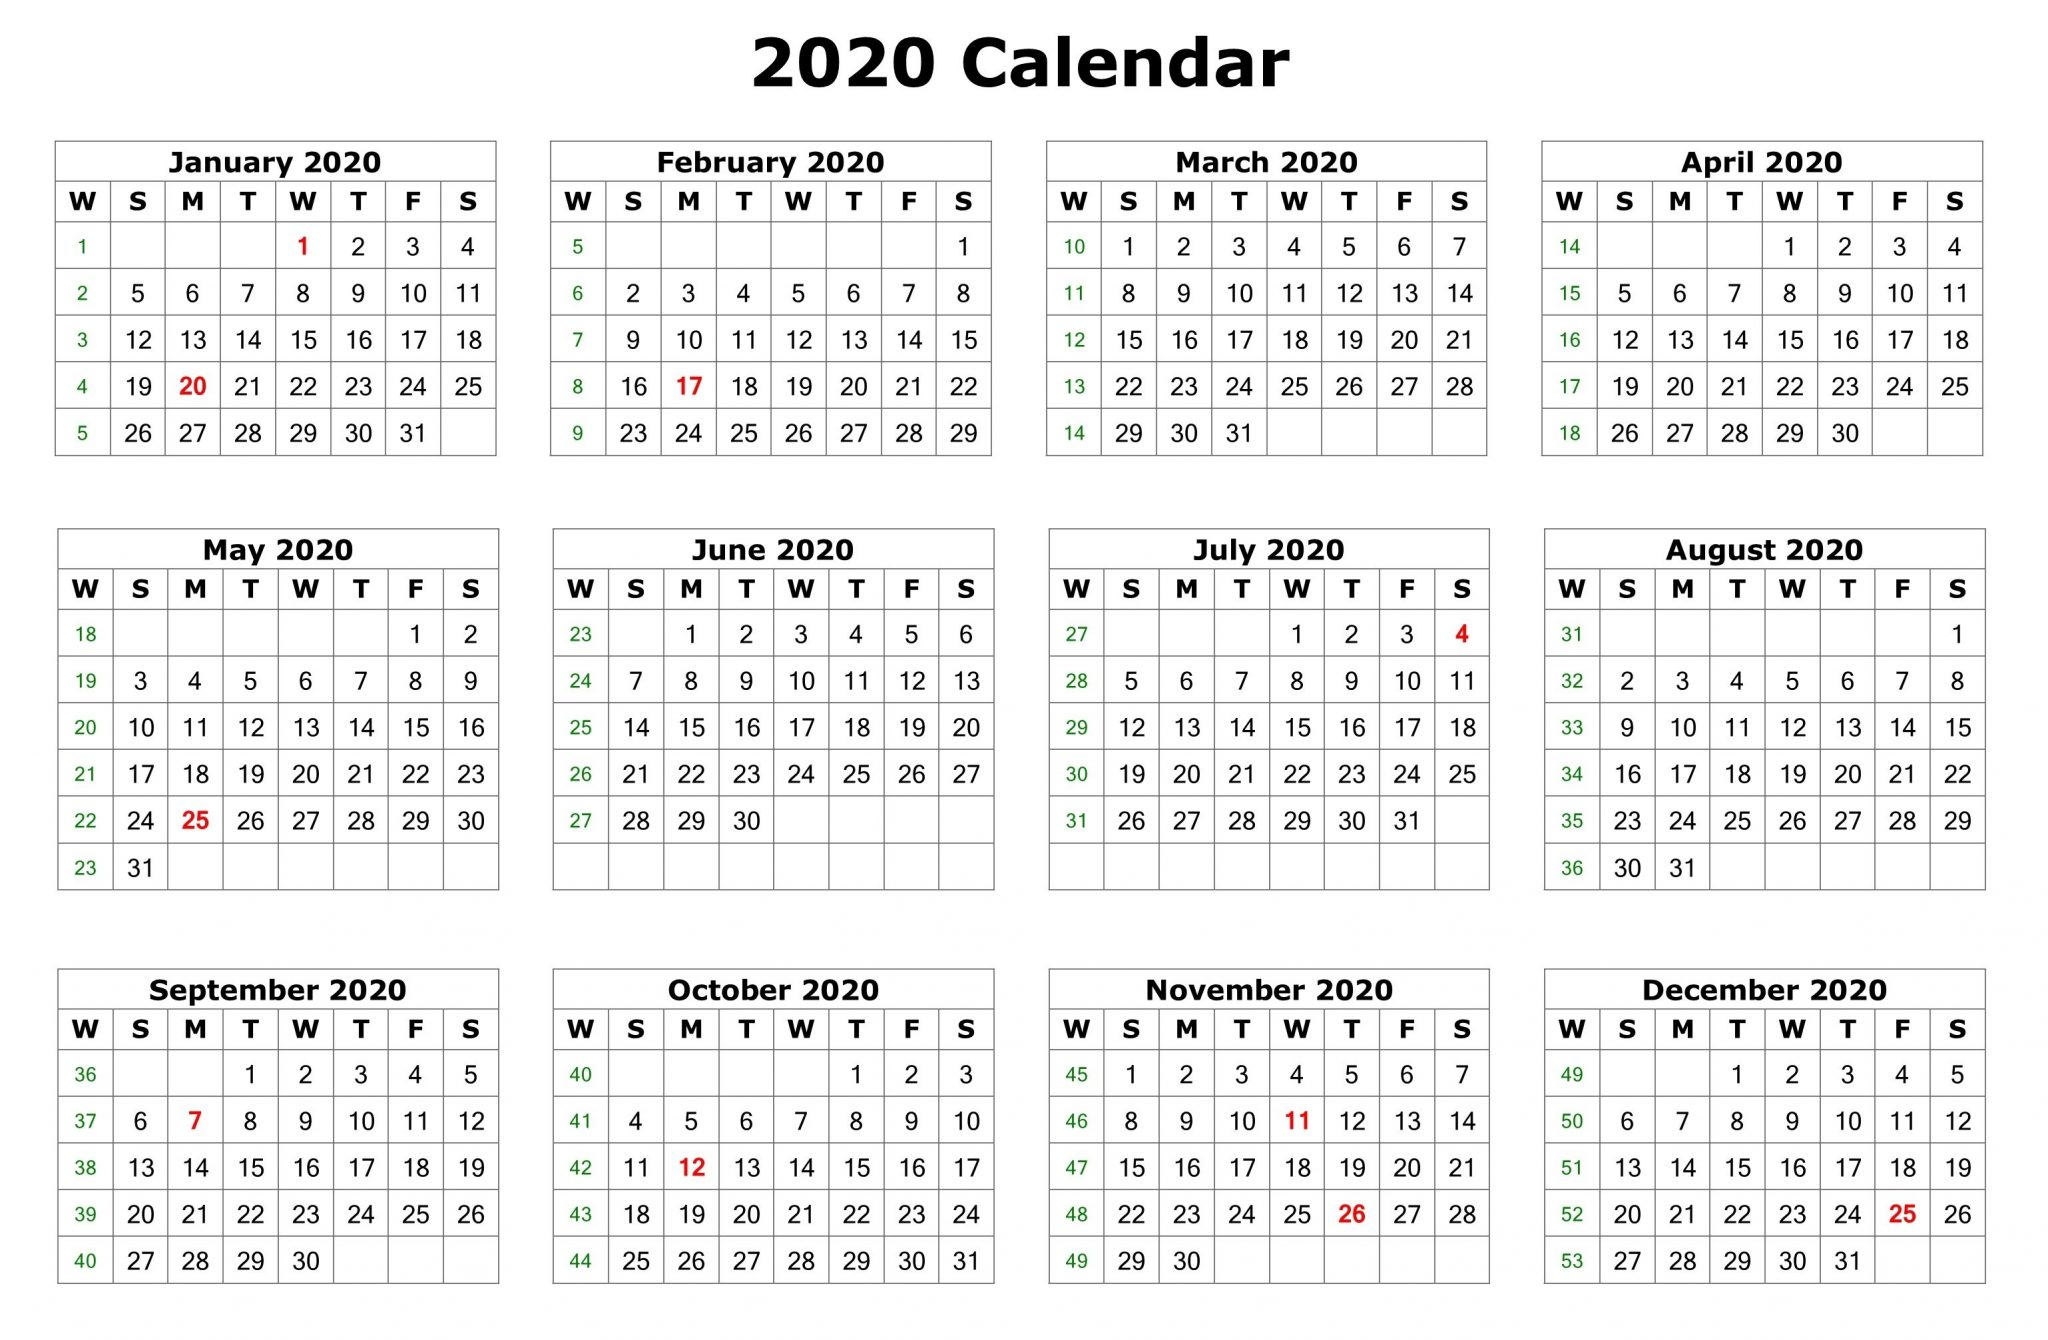 Free Printable 2020 Monthly Calendar.Free Yearly Printable Calendar 2020 With Holidays